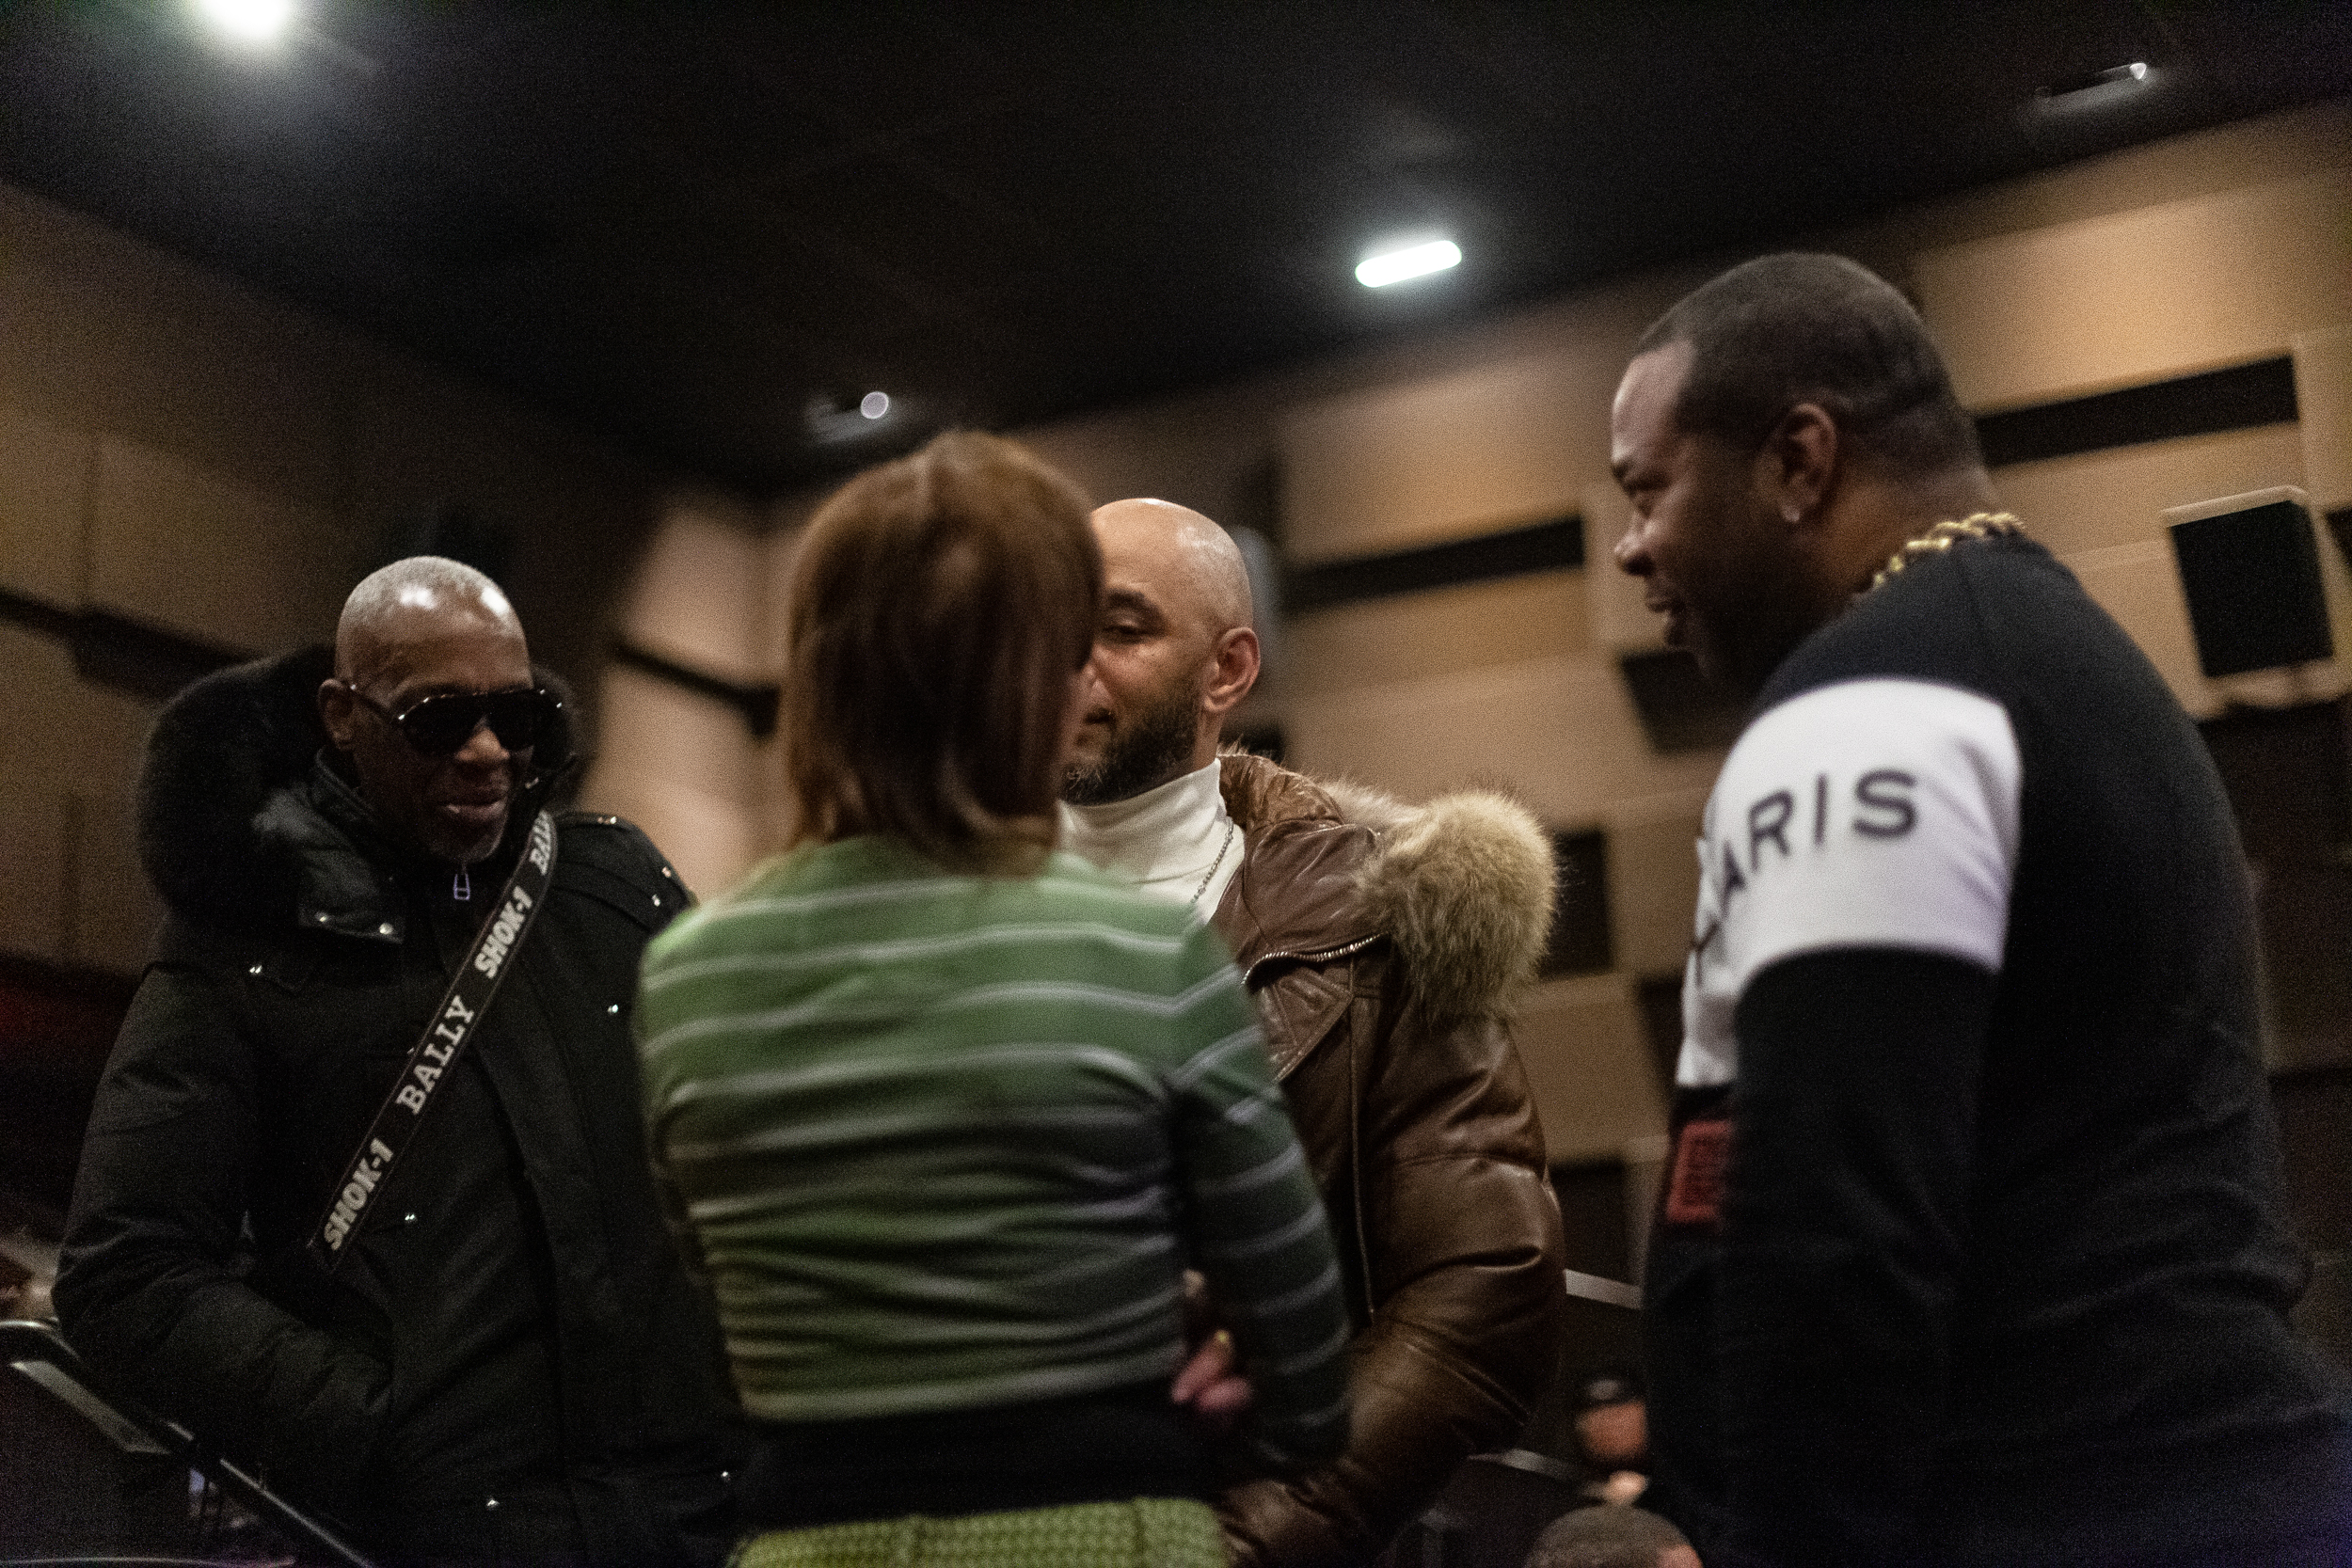 Swizz Beatz and Busta Rhymes having a conversation at Future's WIZRD documentary screening